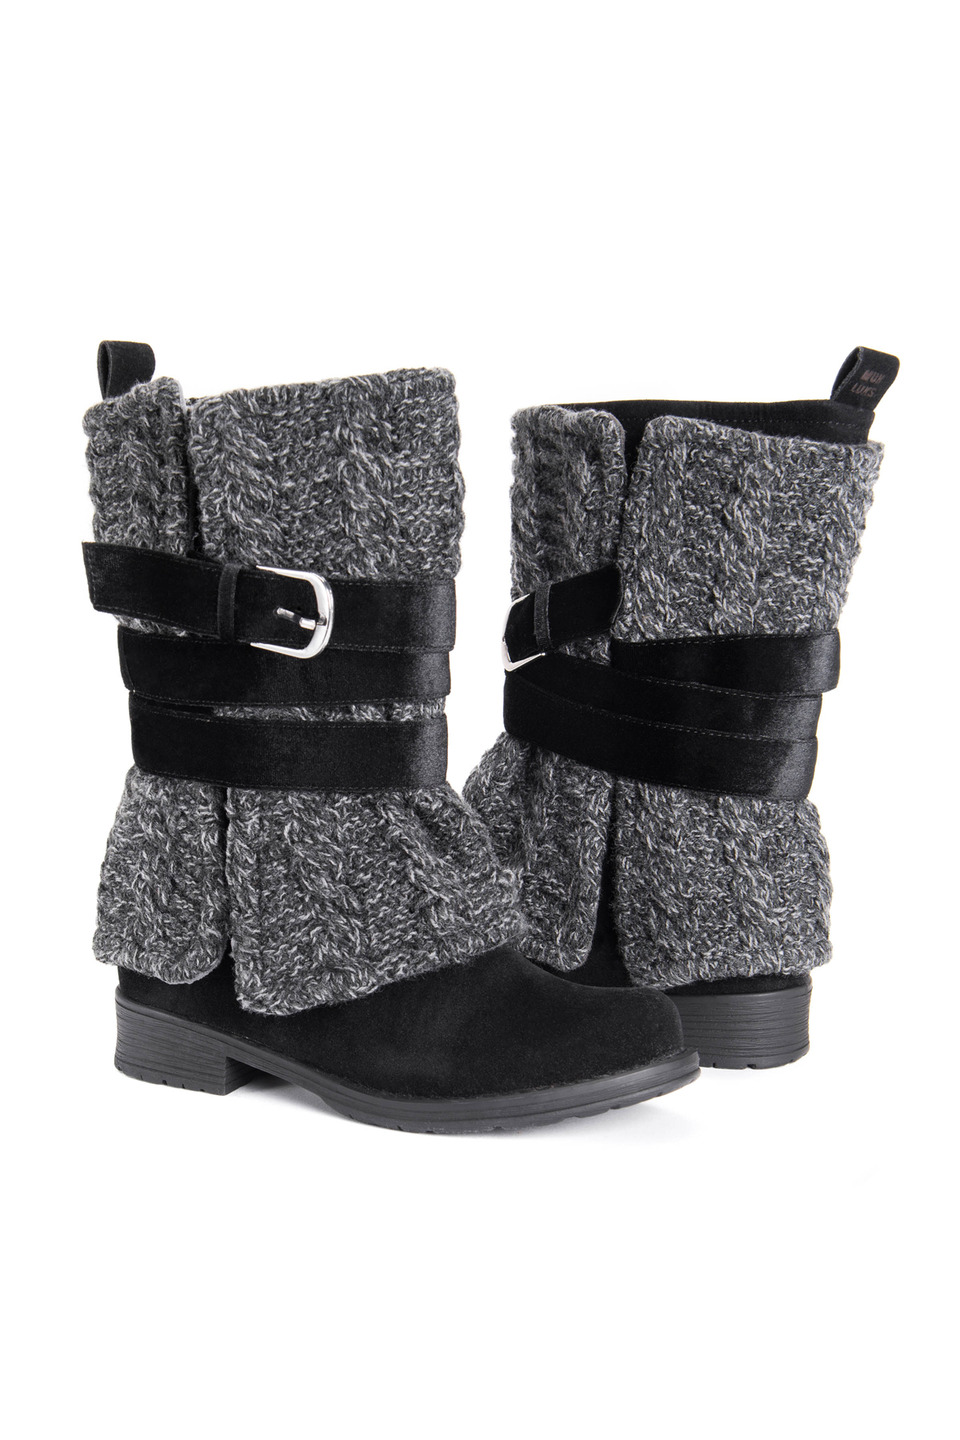 Women's Bessie Boots in Black Cable